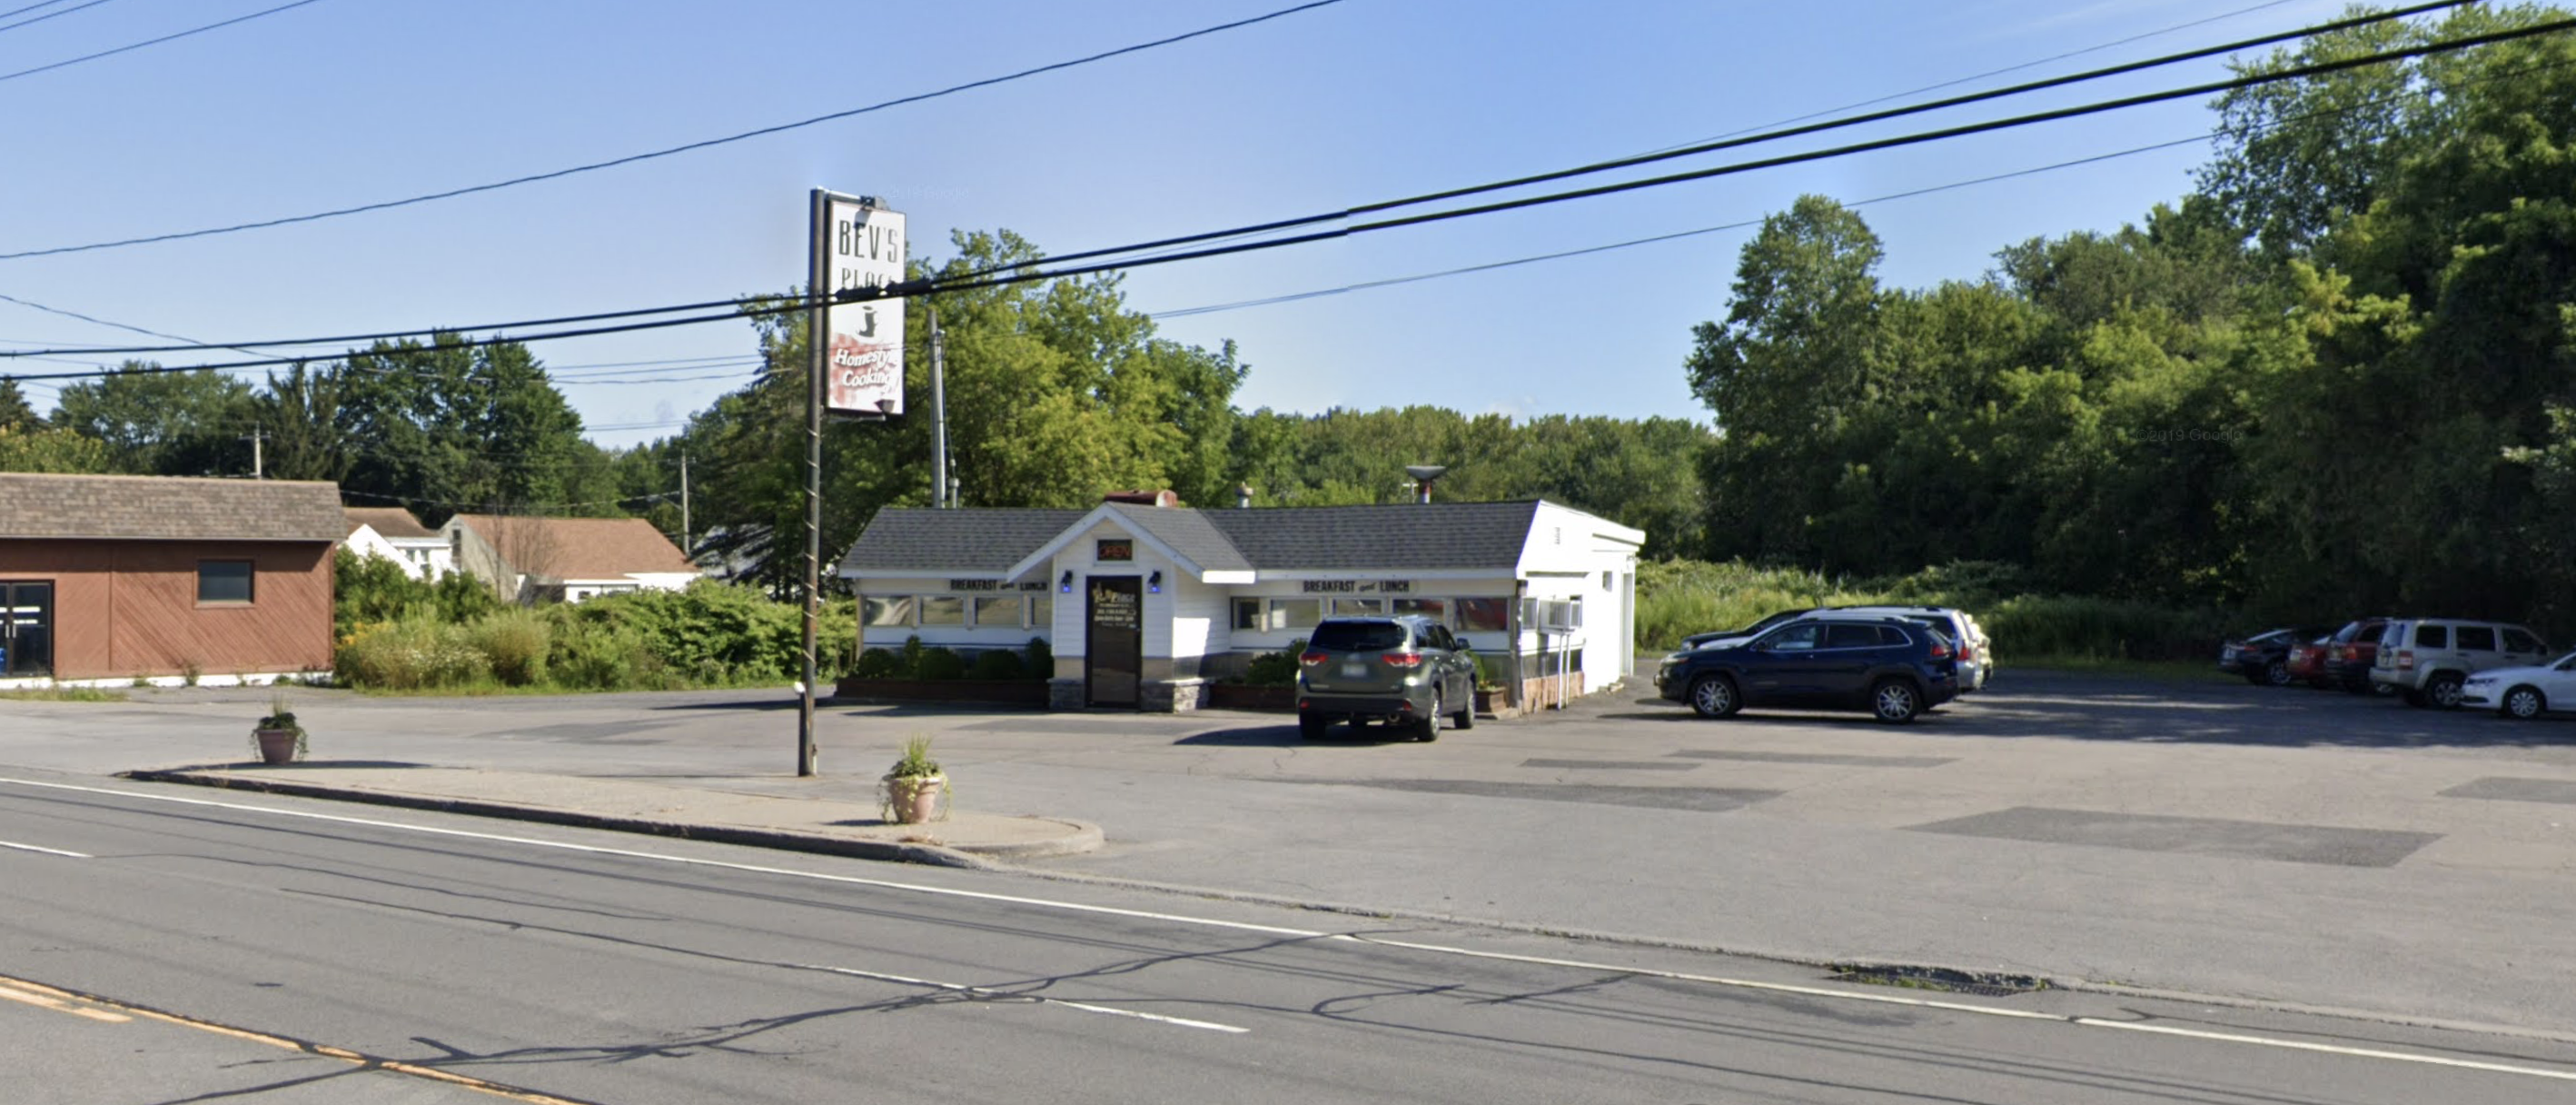 372 Oriskany Blvd, Whitesboro, New York